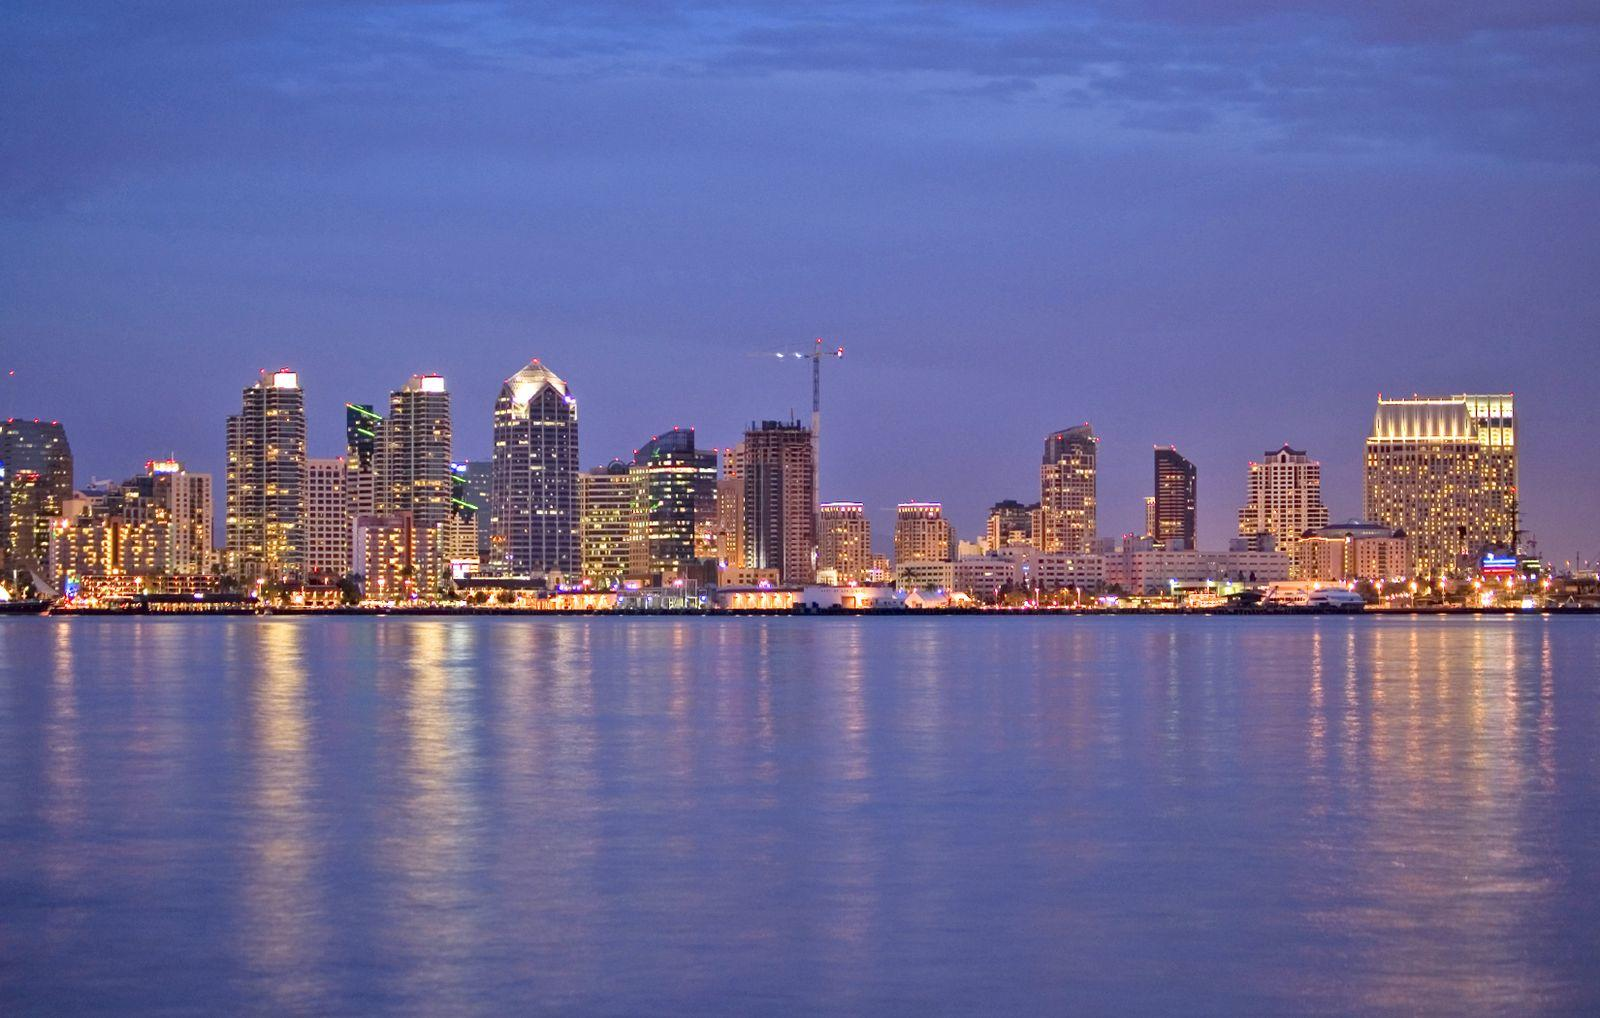 Gorgeous view of downtown San Diego sky line from the San Diego